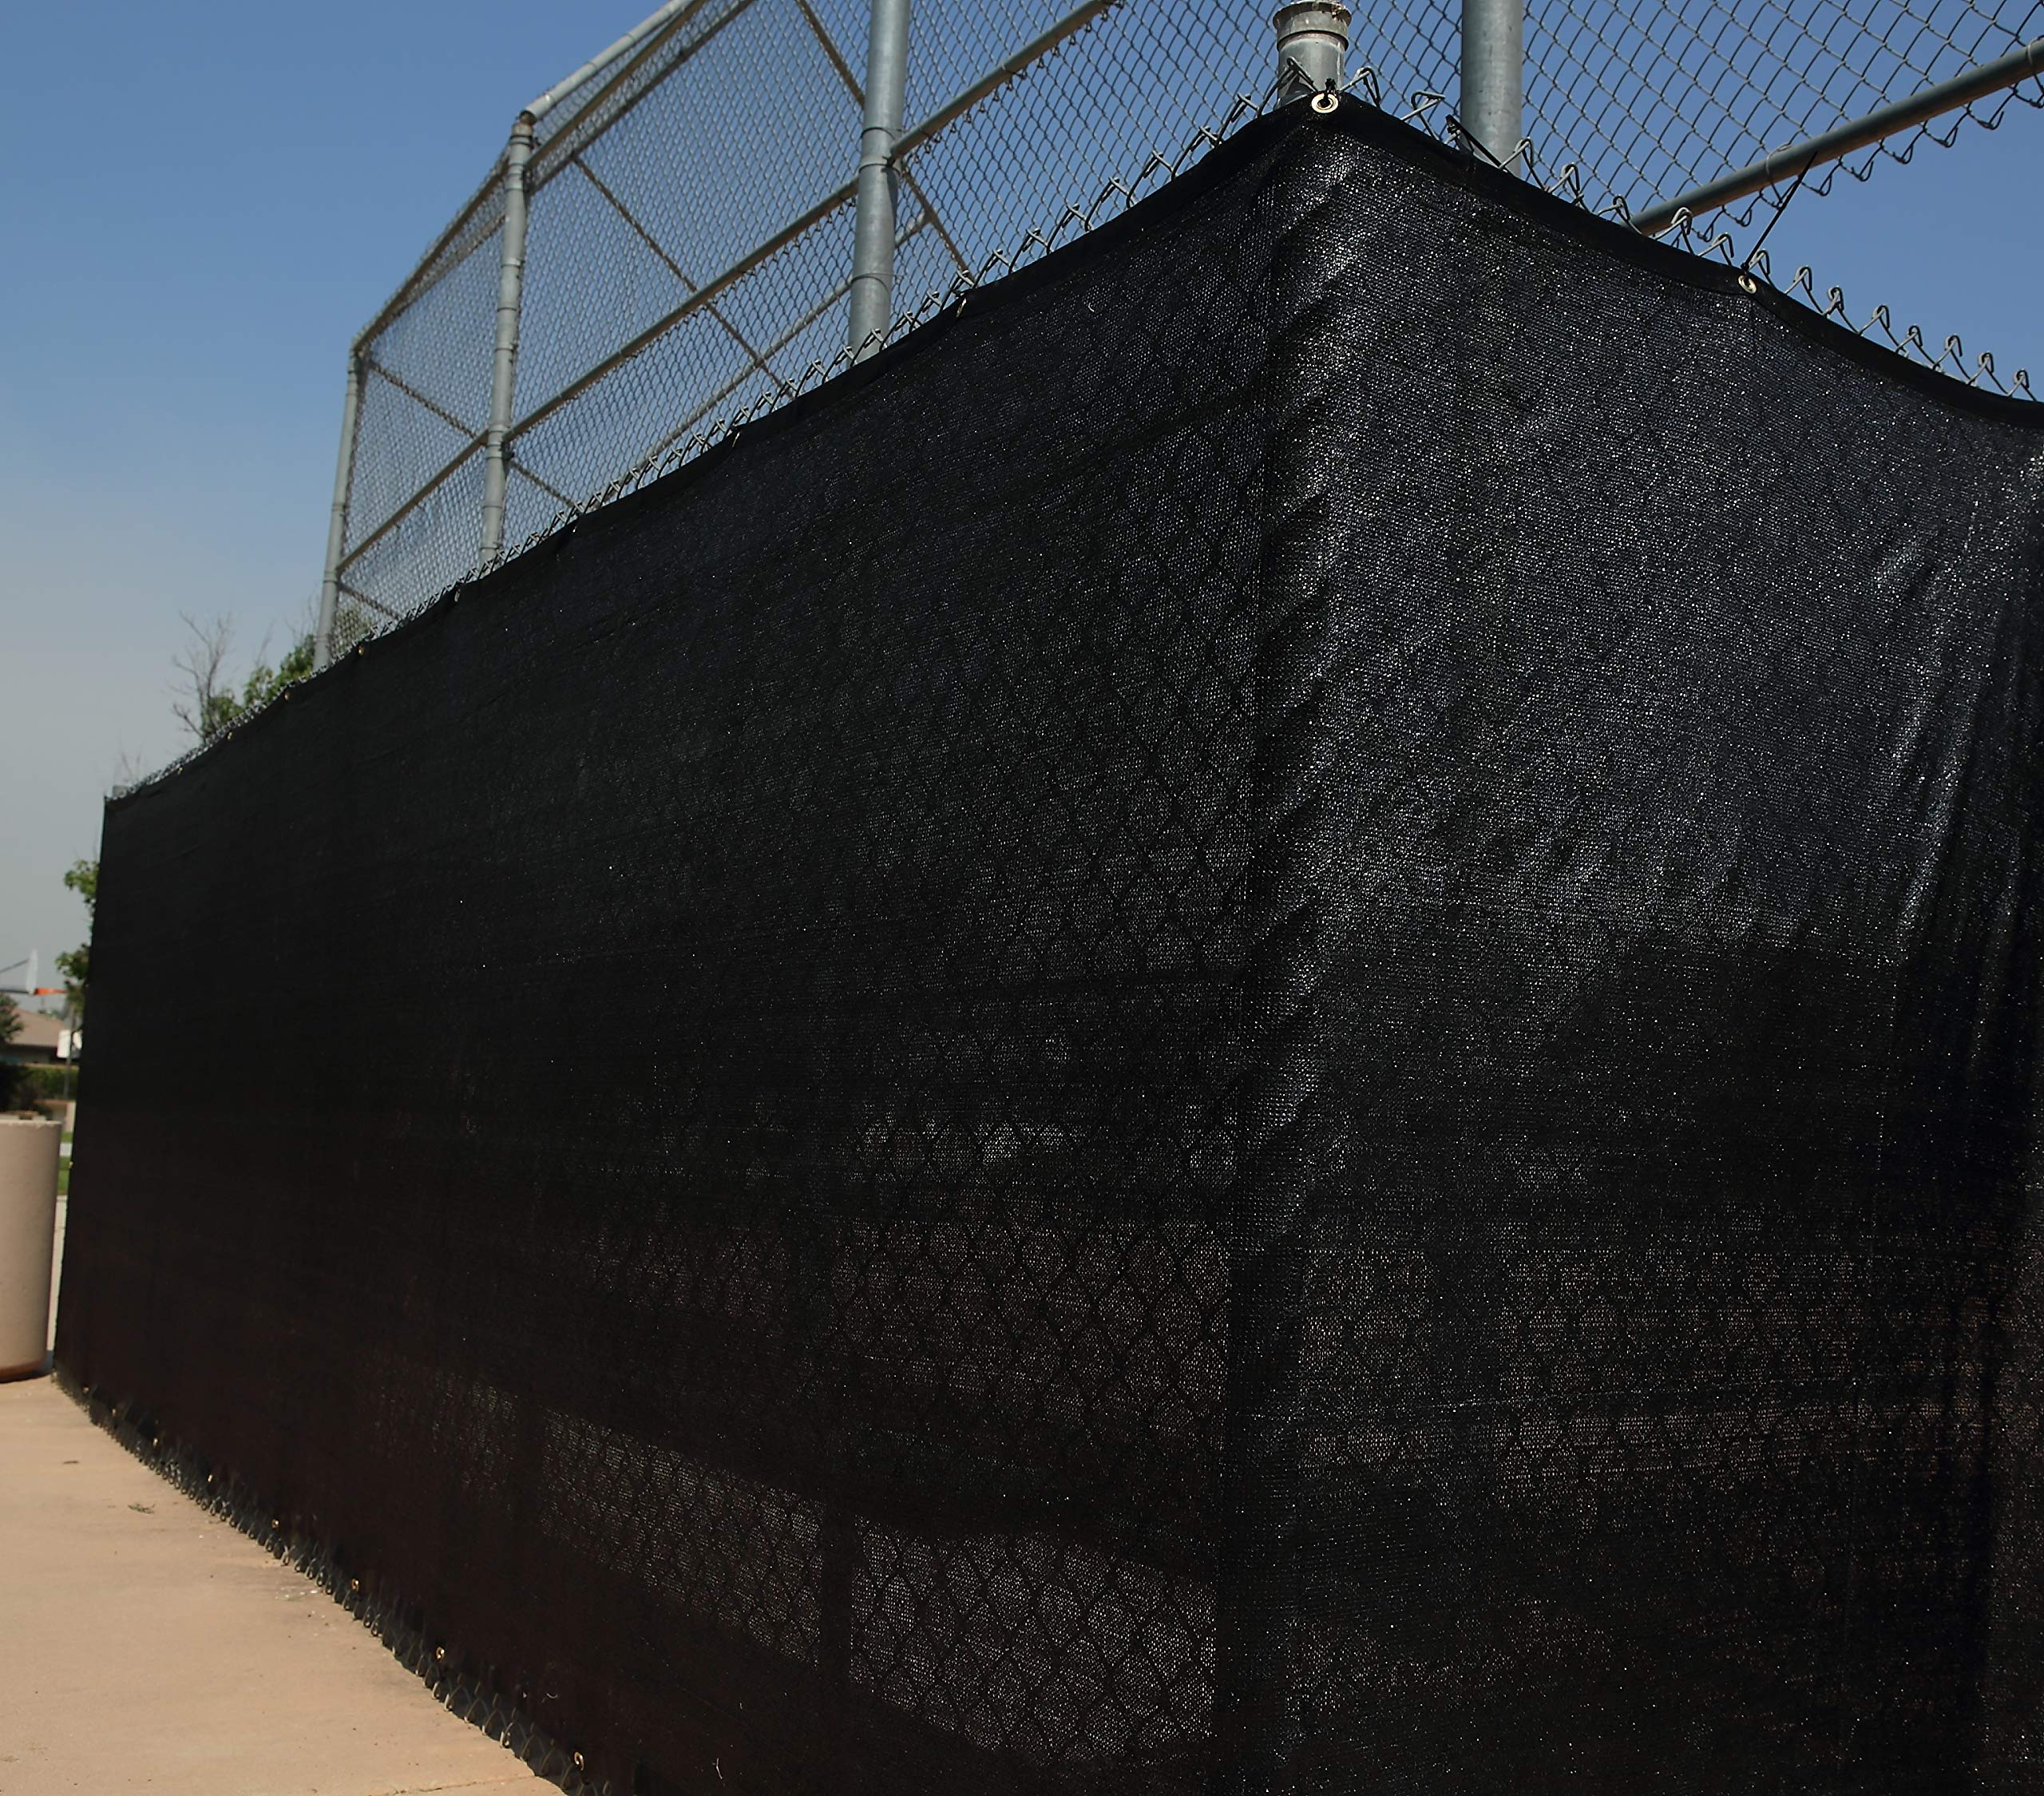 Heavy Duty 6 ft. X 50 ft. Privacy Windscreen Fence Screen Mesh Tarps W/Binding and Grommets (1, Black) by WindscreenSupplyCo